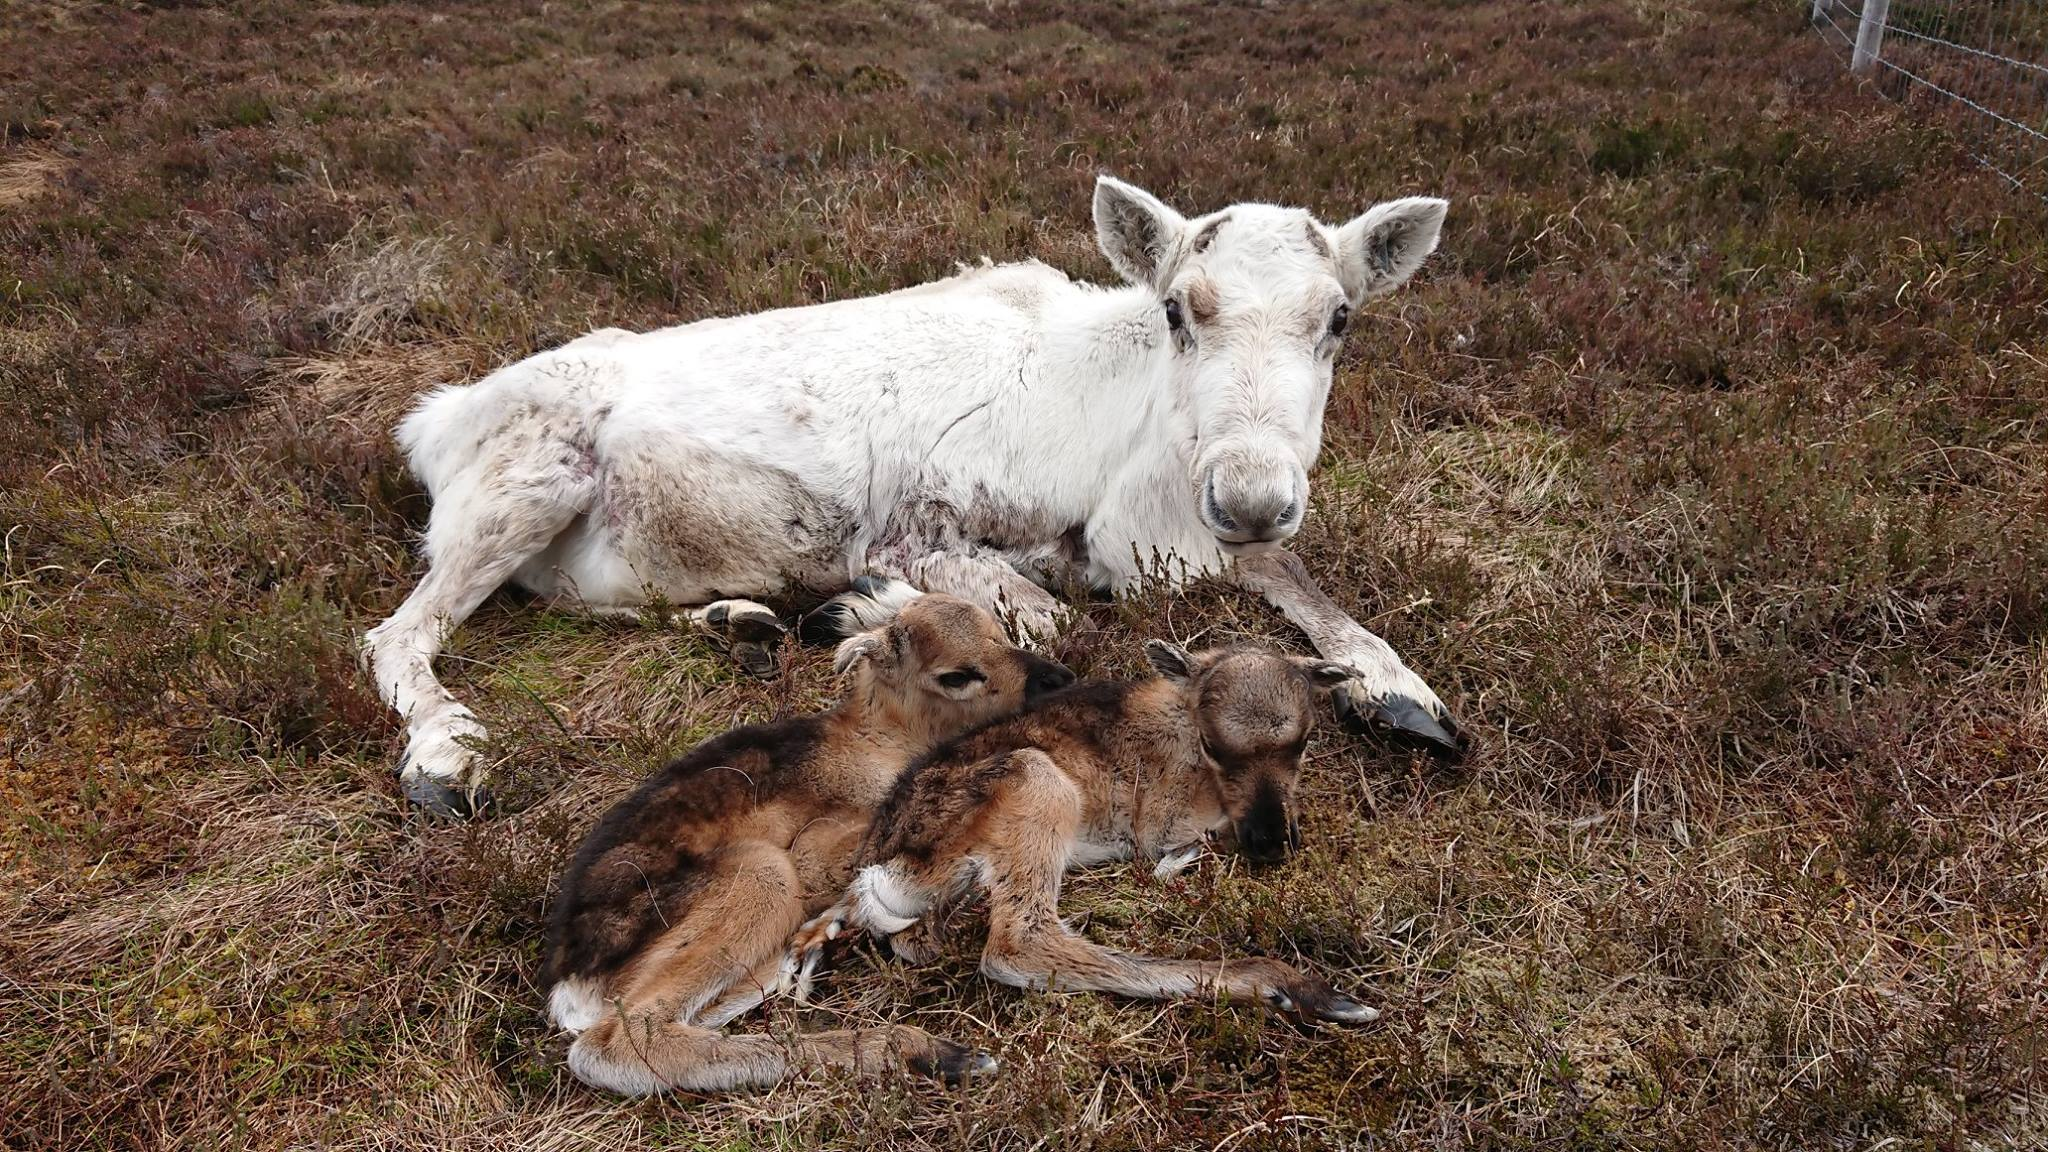 The two calves were born at the Cairngorms Reindeer Centre